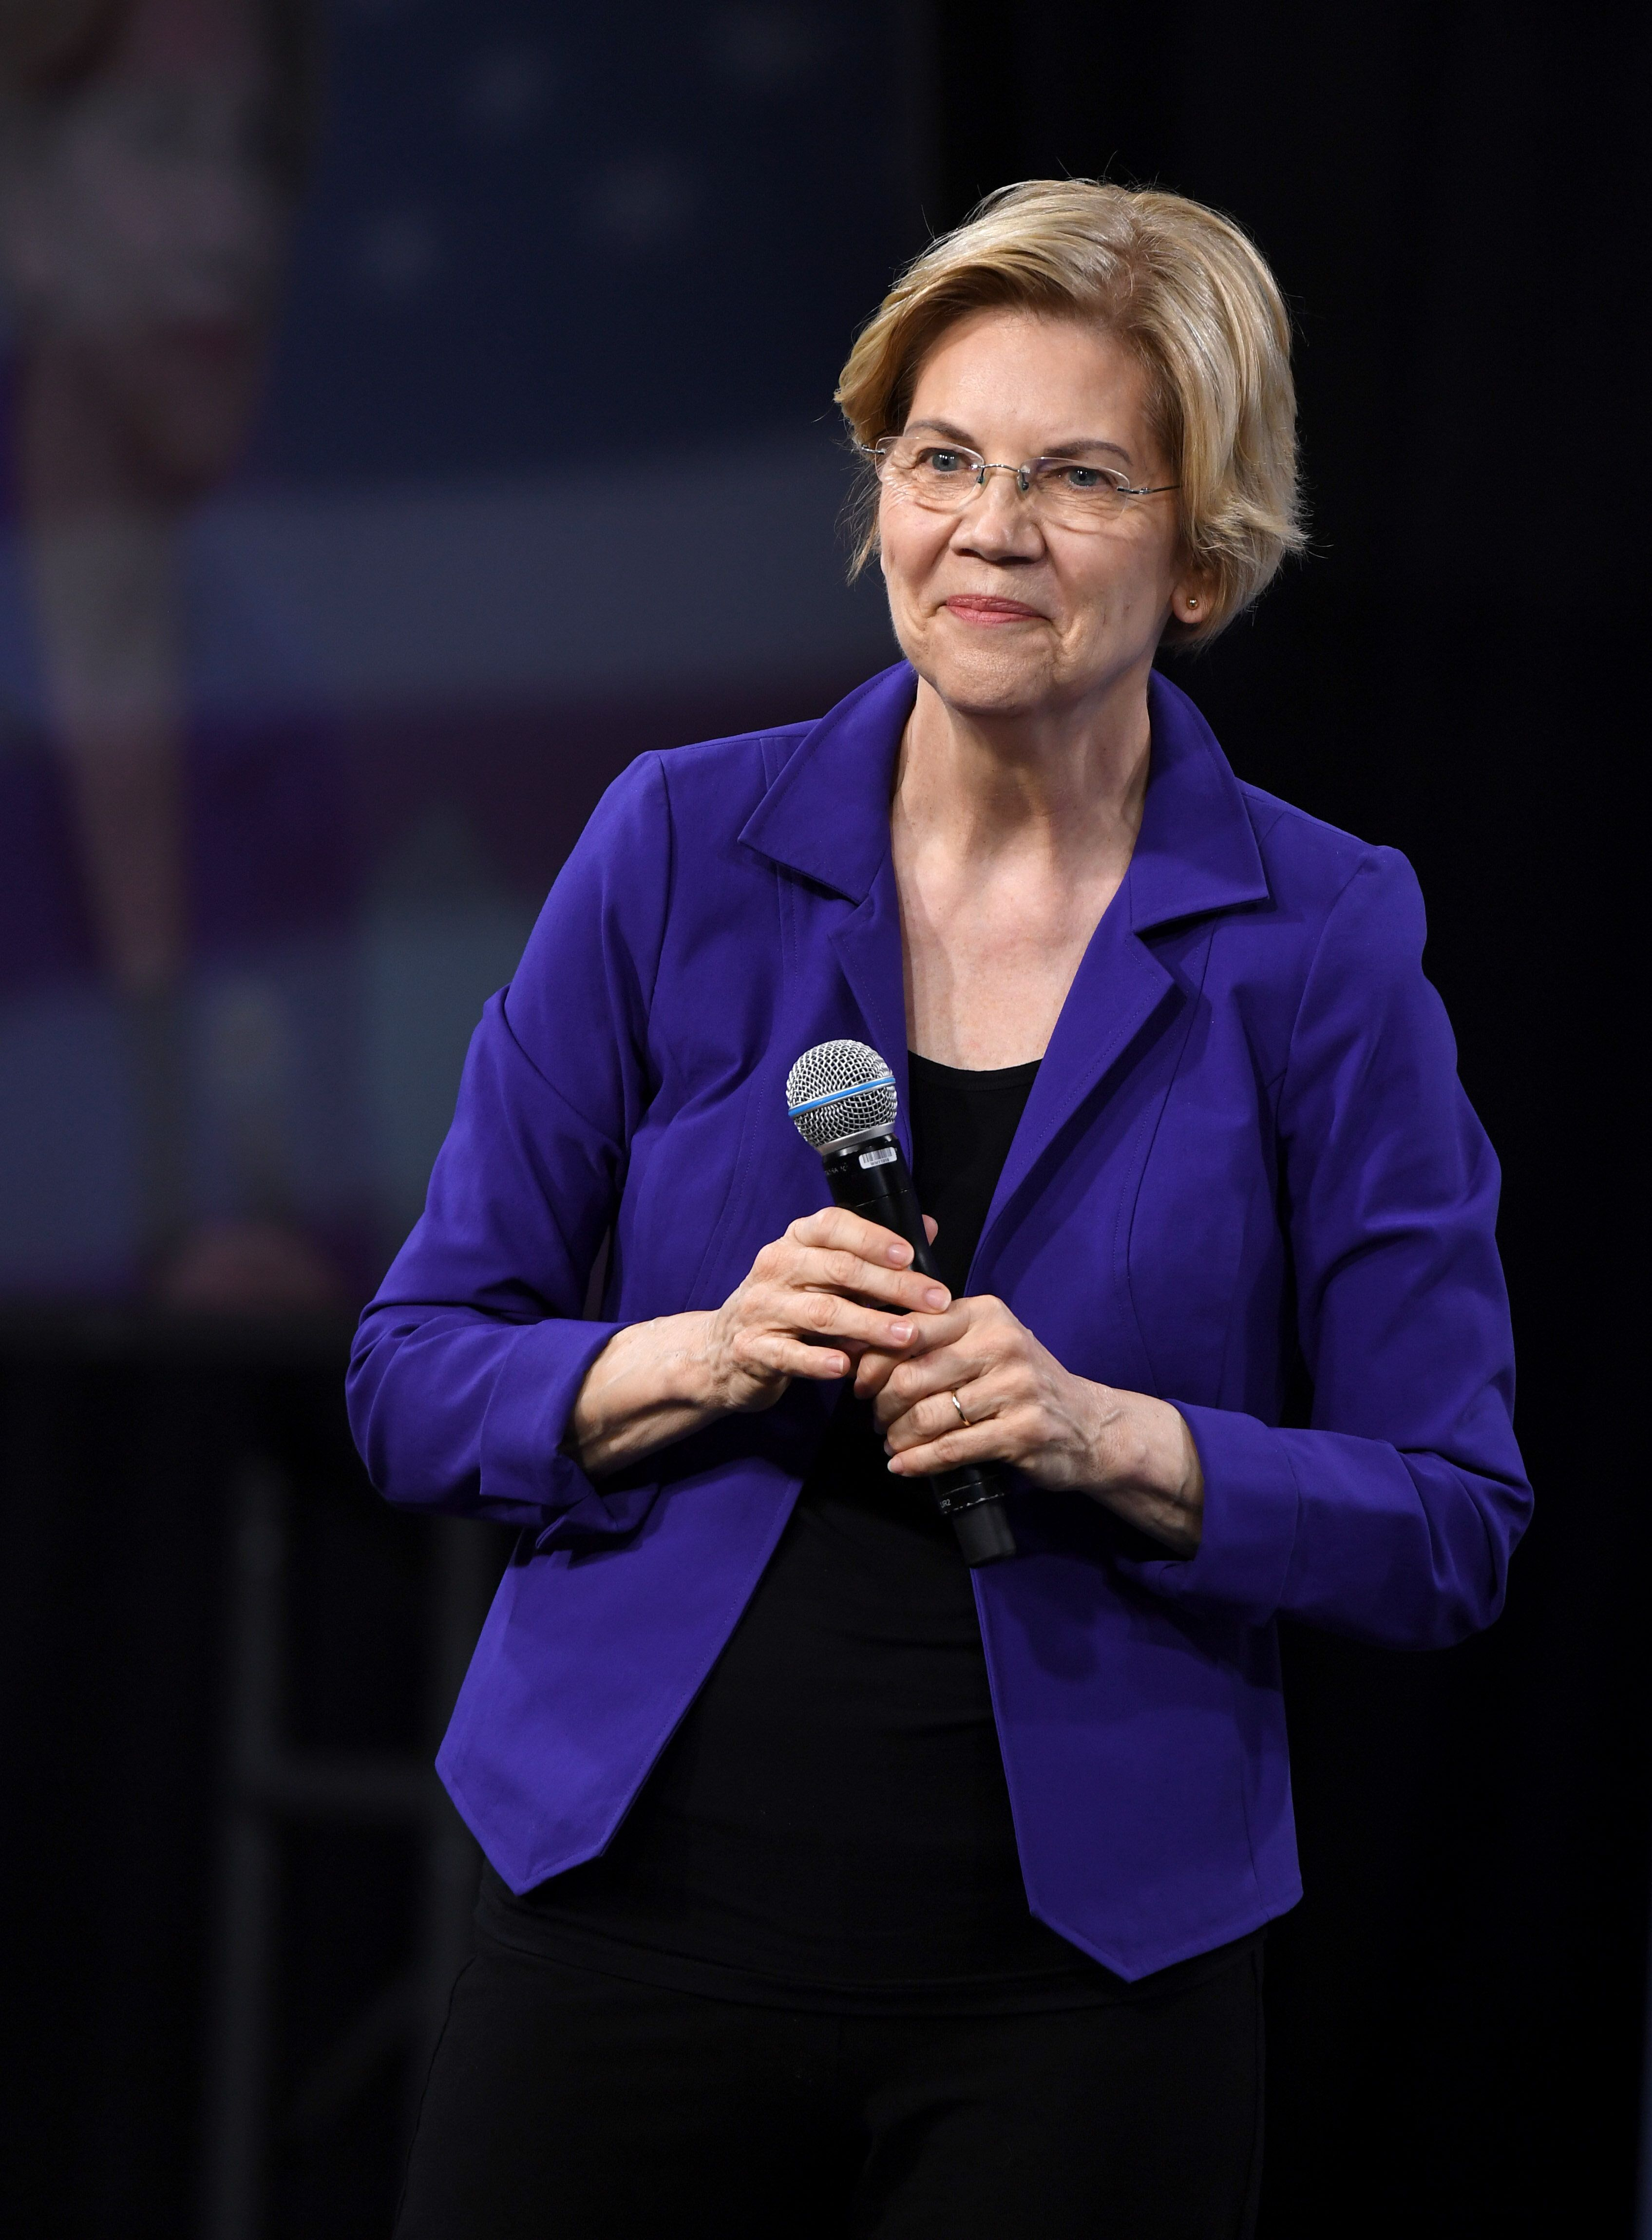 LAS VEGAS, NEVADA - APRIL 27:  Democratic presidential candidate U.S. Sen. Elizabeth Warren (D-MA) speaks at the National Forum on Wages and Working People: Creating an Economy That Works for All at Enclave on April 27, 2019 in Las Vegas, Nevada. Six of the 2020 Democratic presidential candidates are attending the forum, held by the Service Employees International Union and the Center for American Progress Action Fund, to share their economic policies.  (Photo by Ethan Miller/Getty Images)